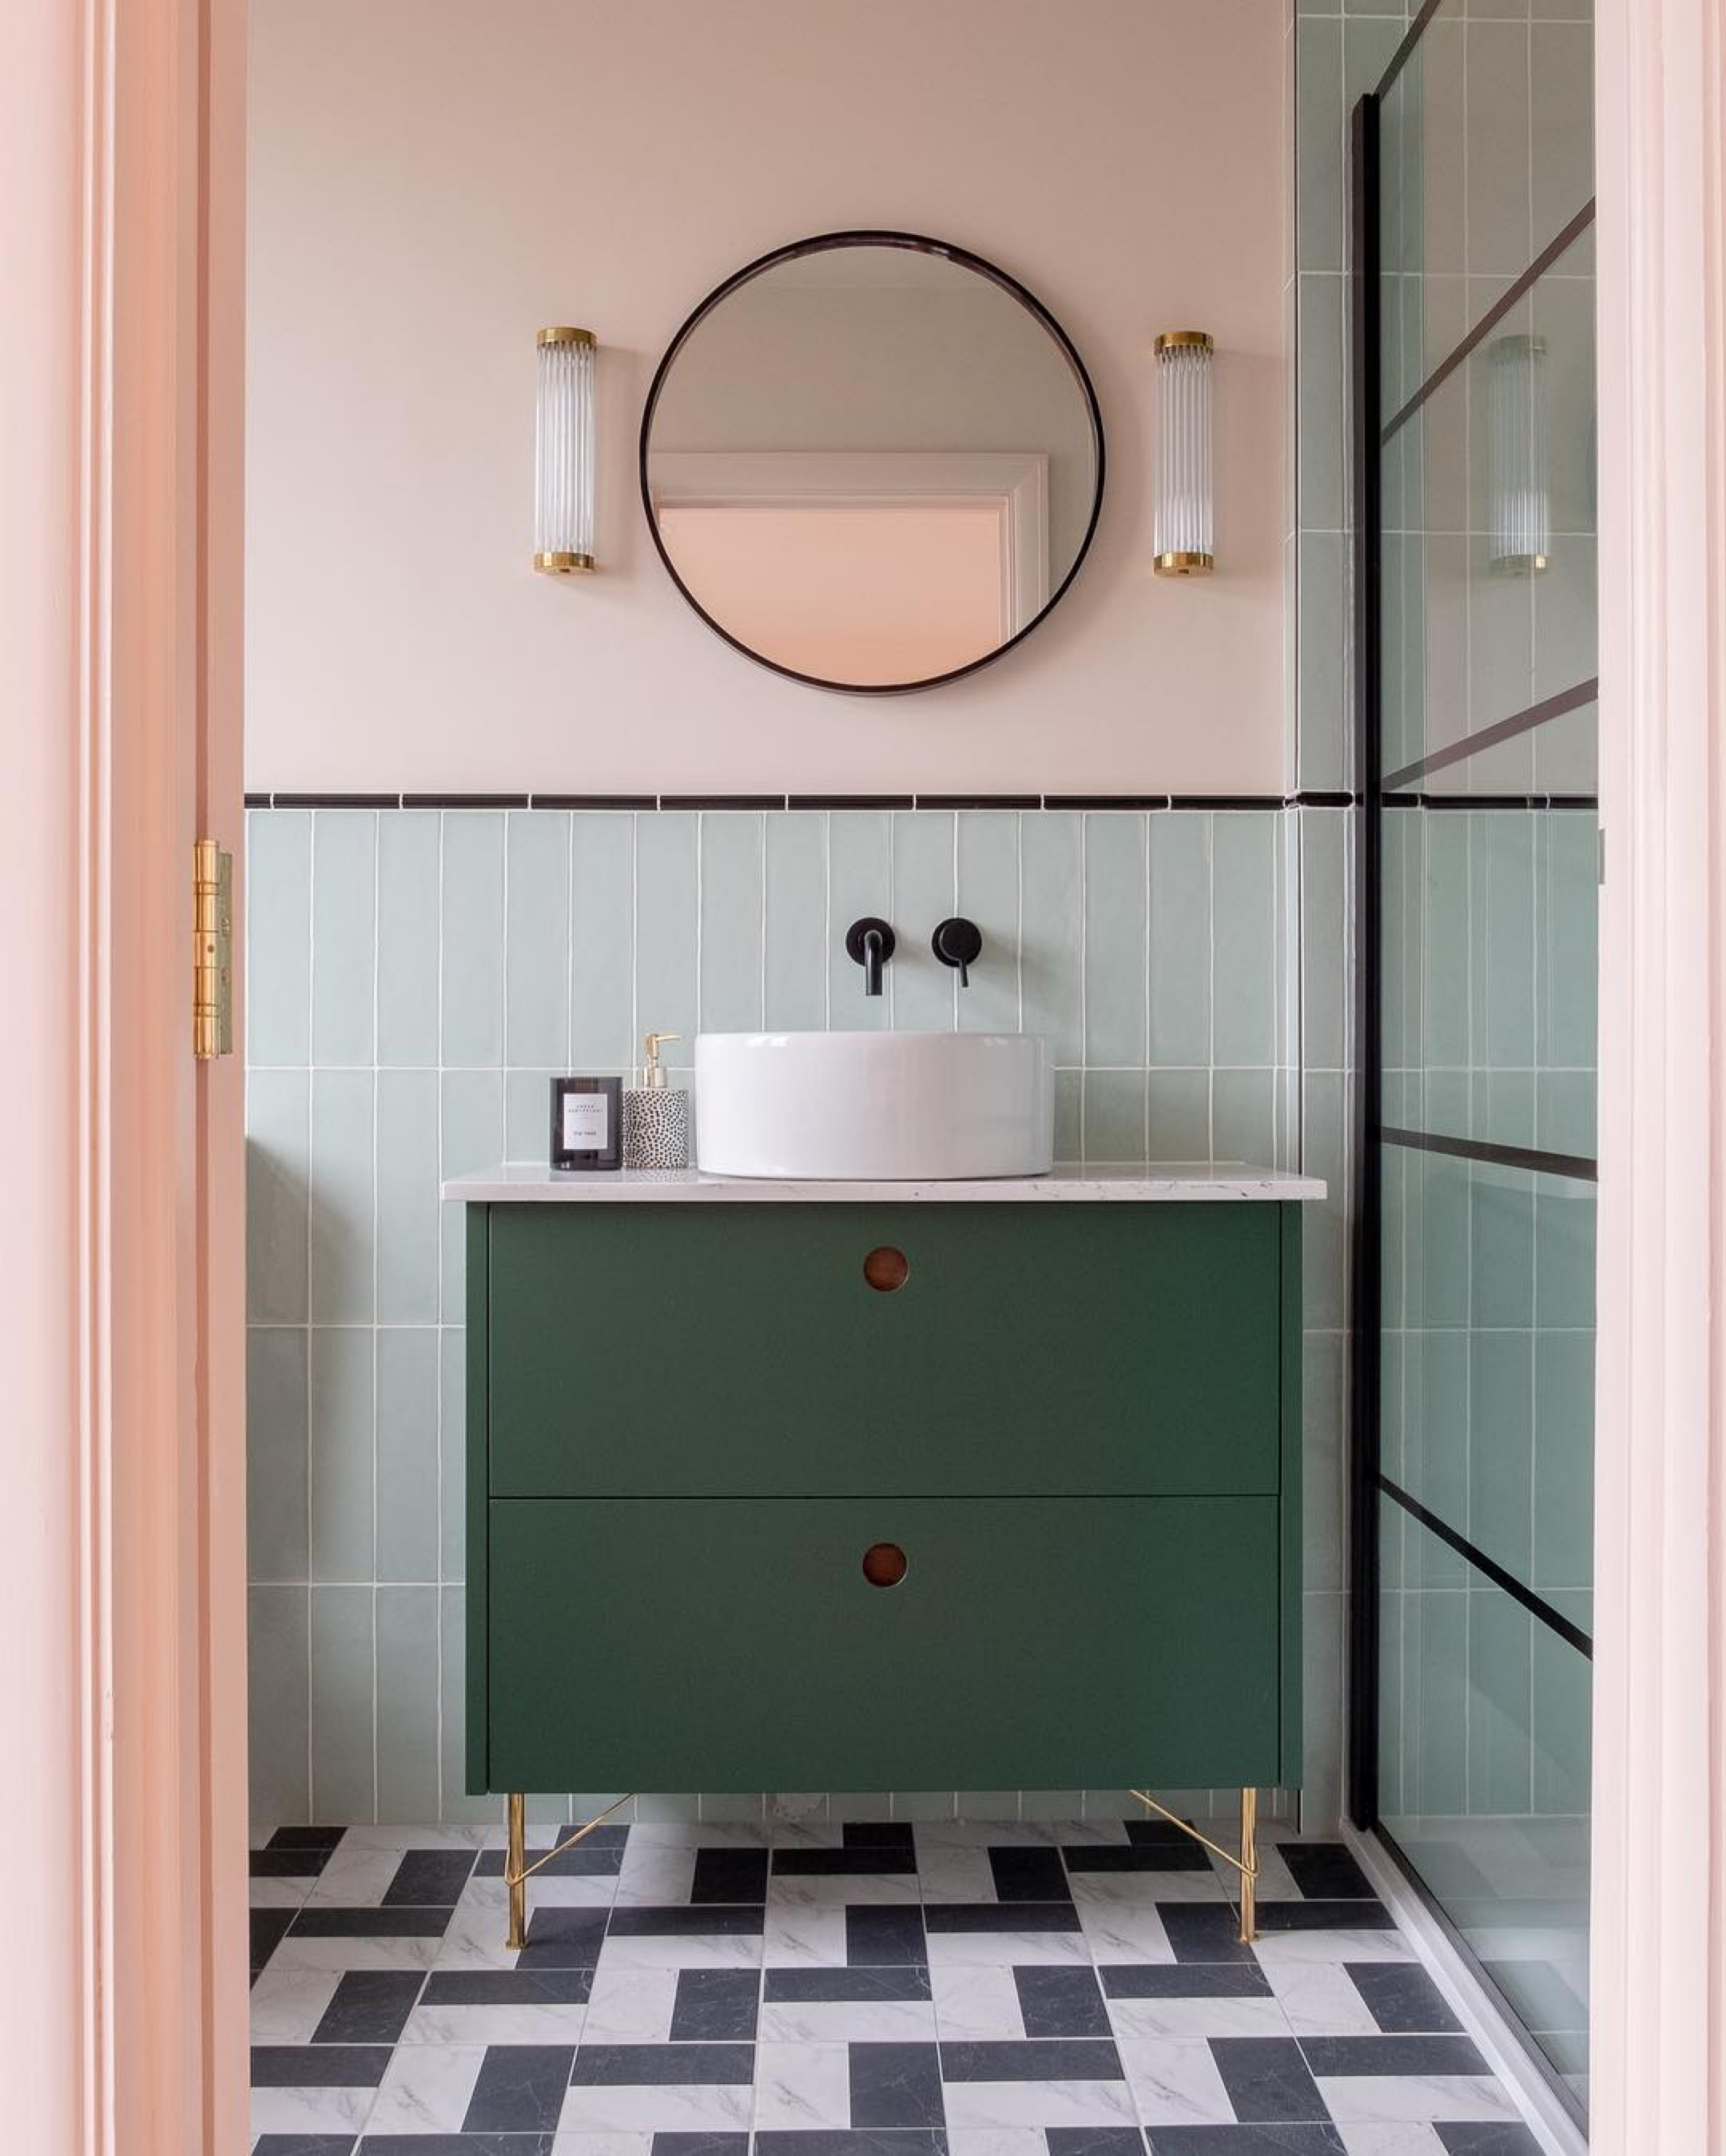 Mixing Old With New: 7 Vintage Bathroom Design Ideas That Will Make You Swoon